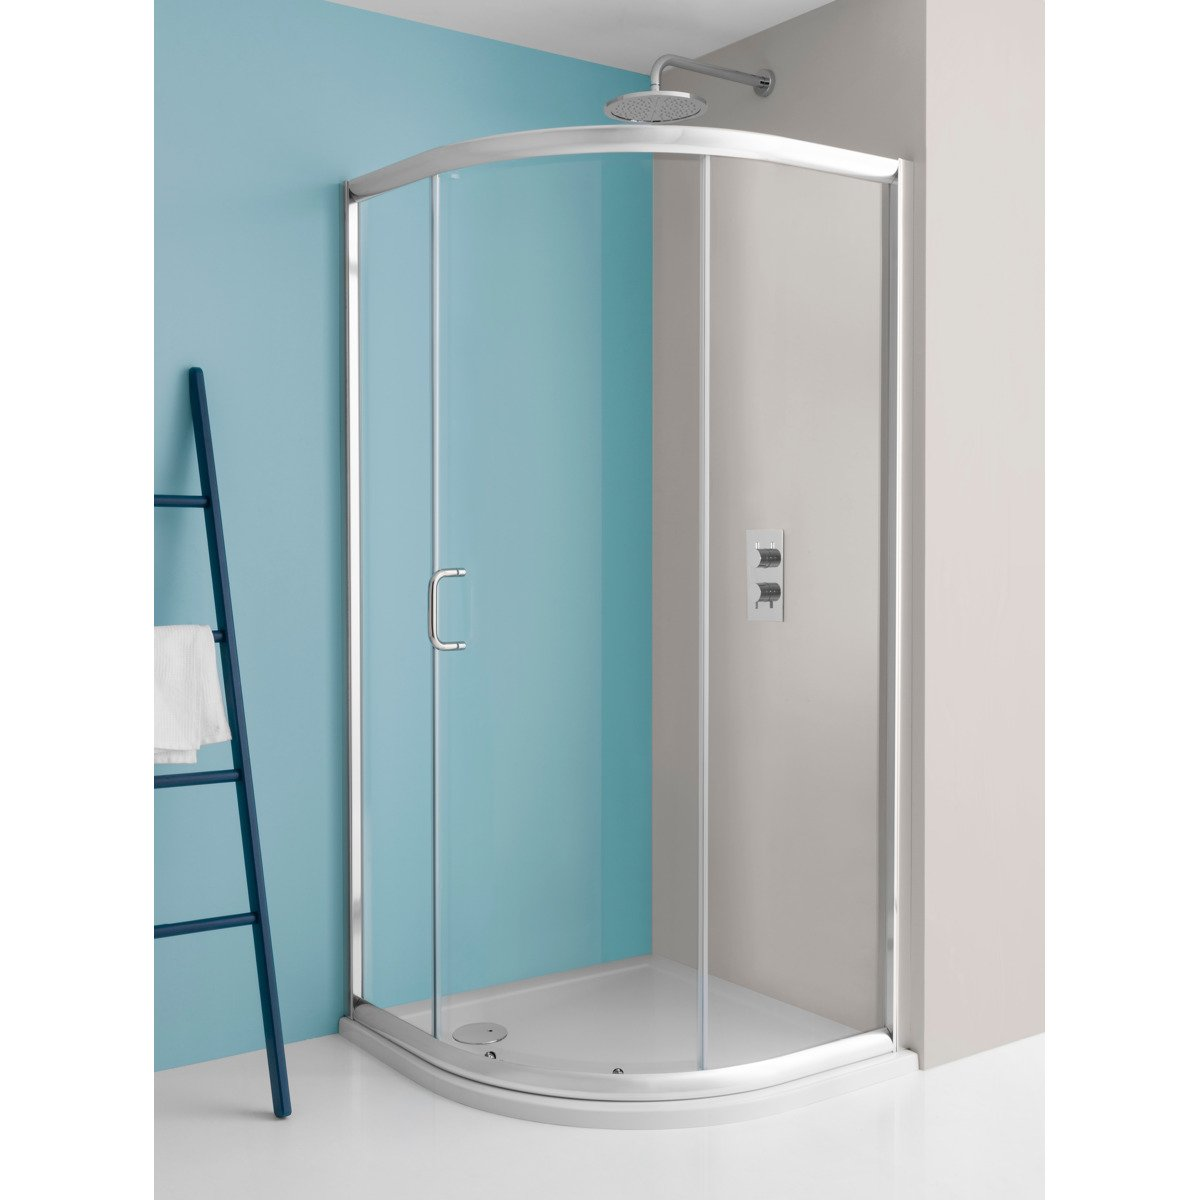 simpsons supreme cabine de douche 185x100x80cm quart de rond porte glissante profil argent verre. Black Bedroom Furniture Sets. Home Design Ideas